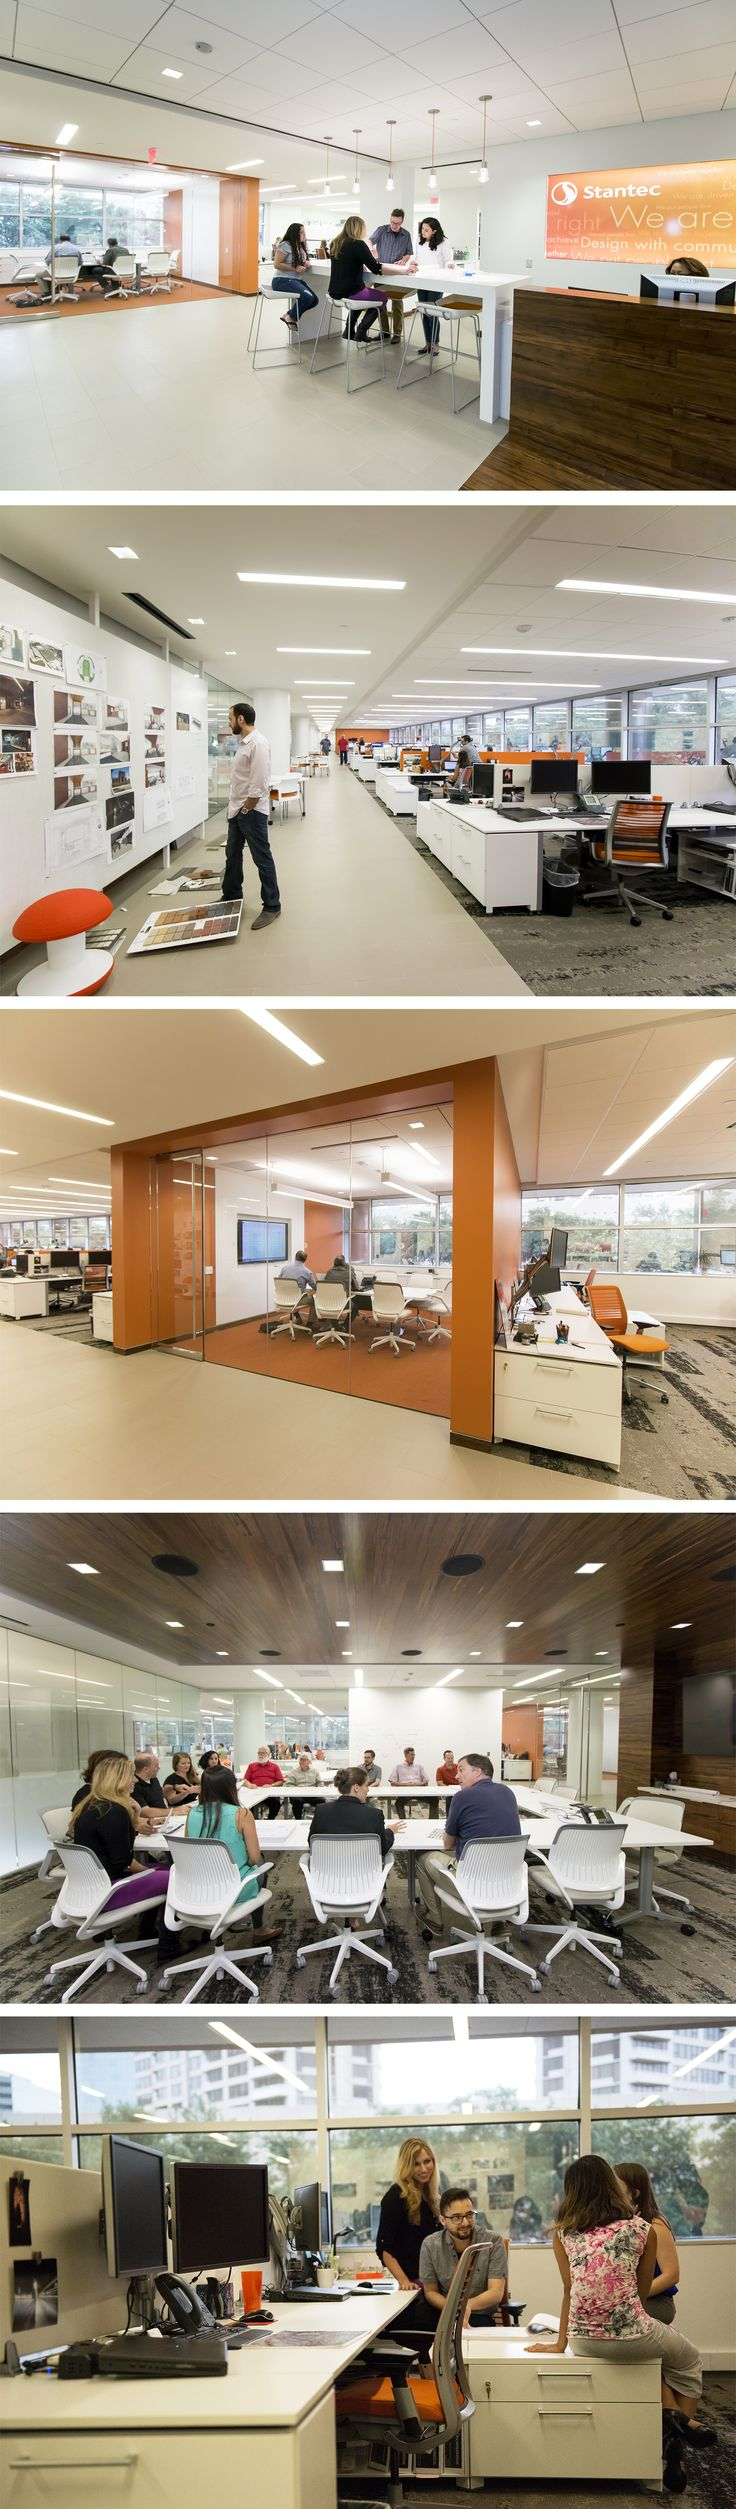 Stantec offices in Alberta, submitted by Maureen McLaine